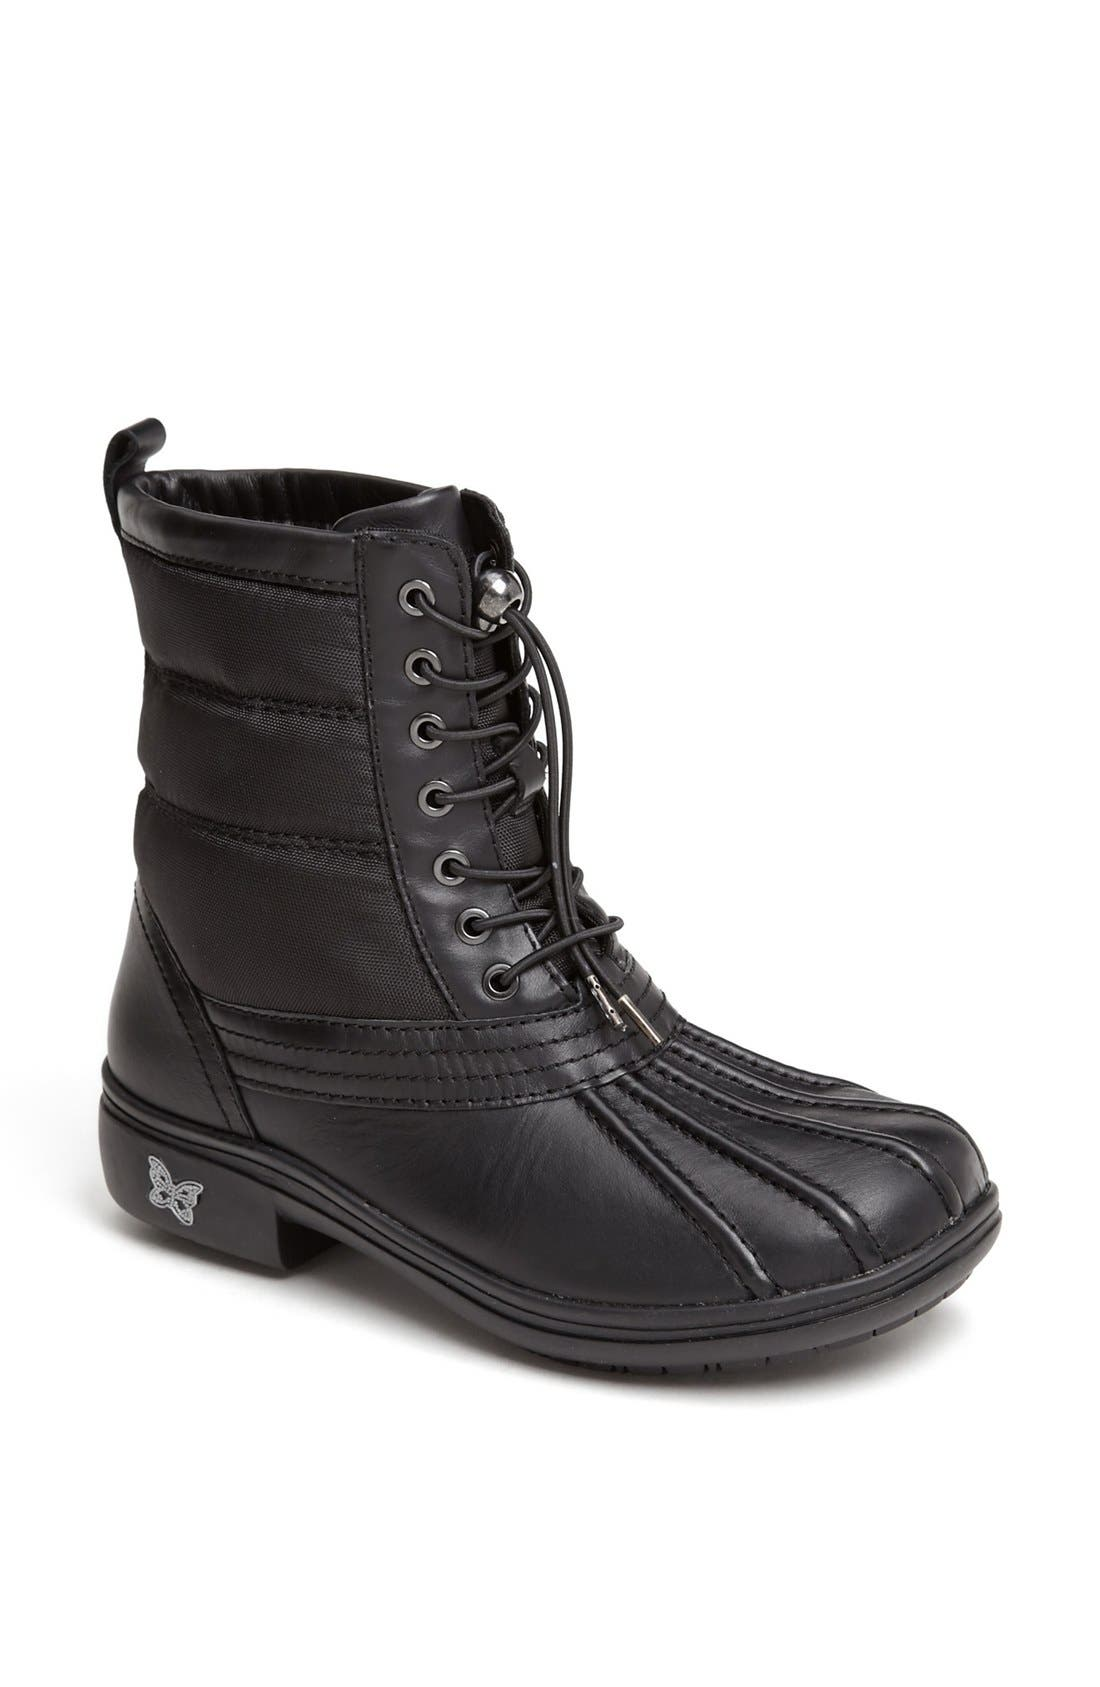 Main Image - Alegria 'Stormy' Cold Weather Boot